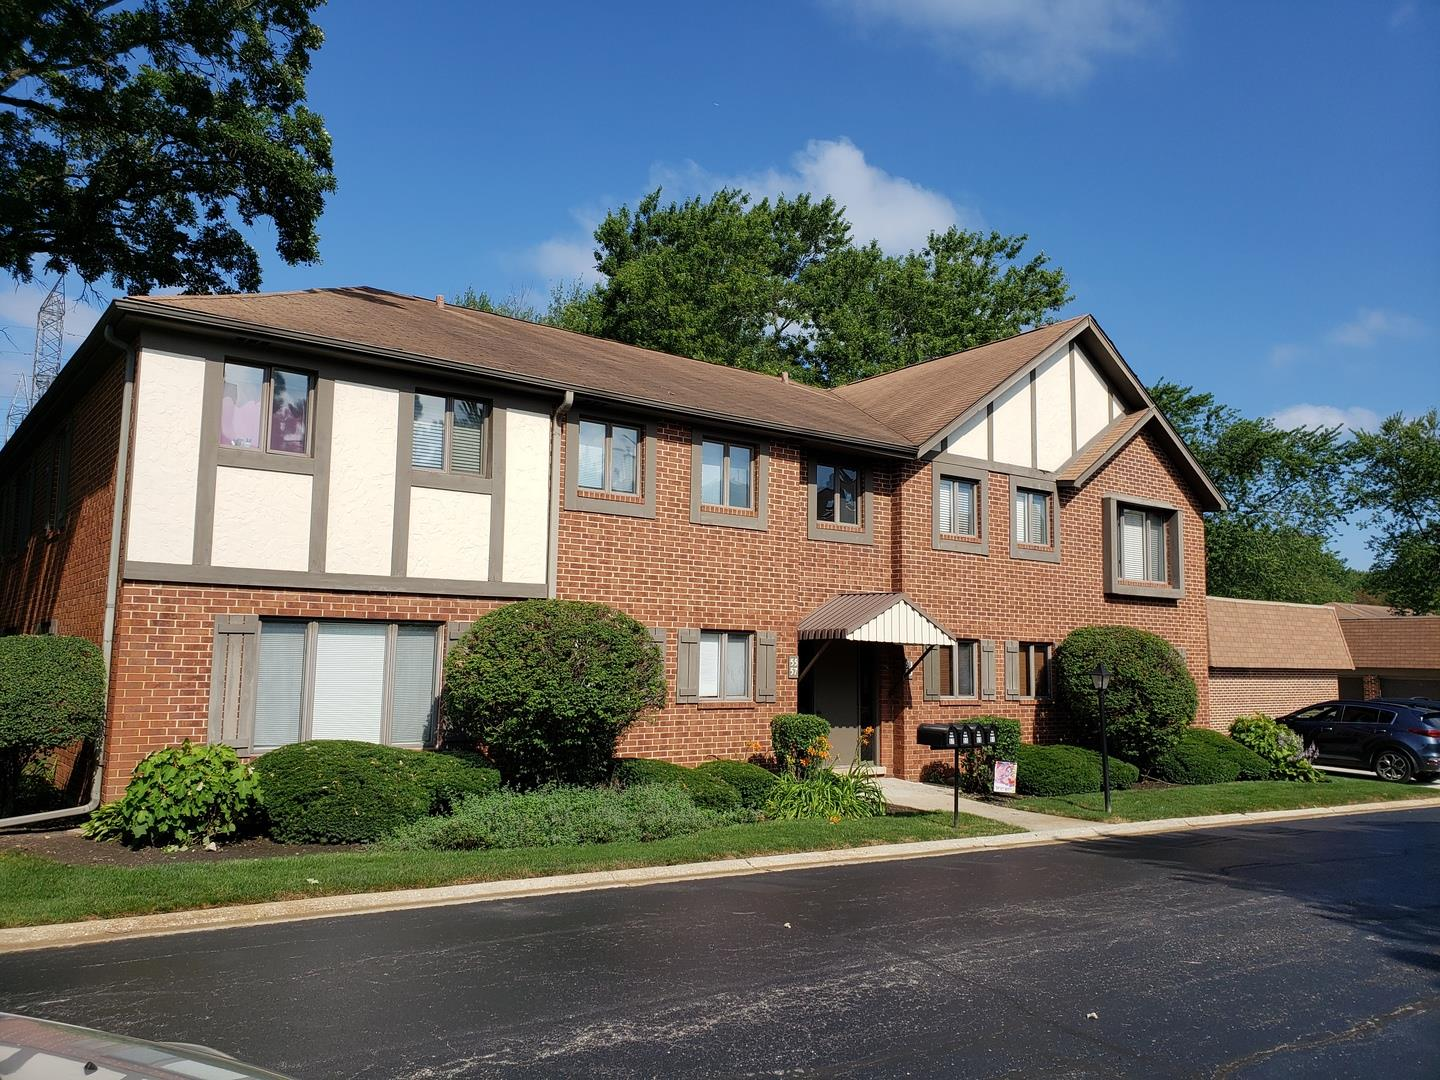 55 Parliament Drive E #137, Palos Heights, IL 60463 - #: 10787038